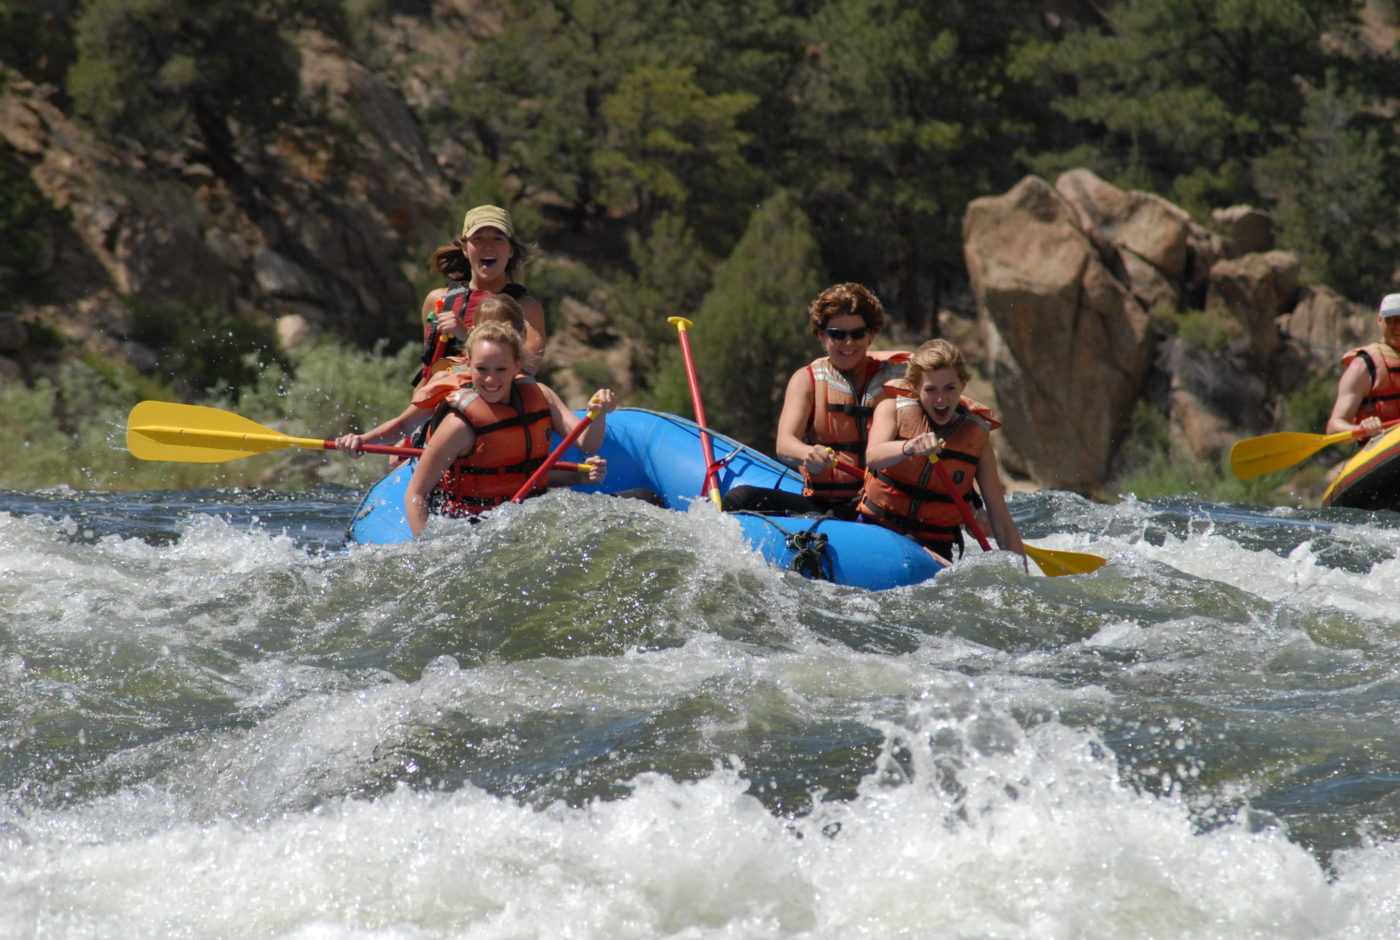 browns canyon whitewater rafting with dvorak expeditions